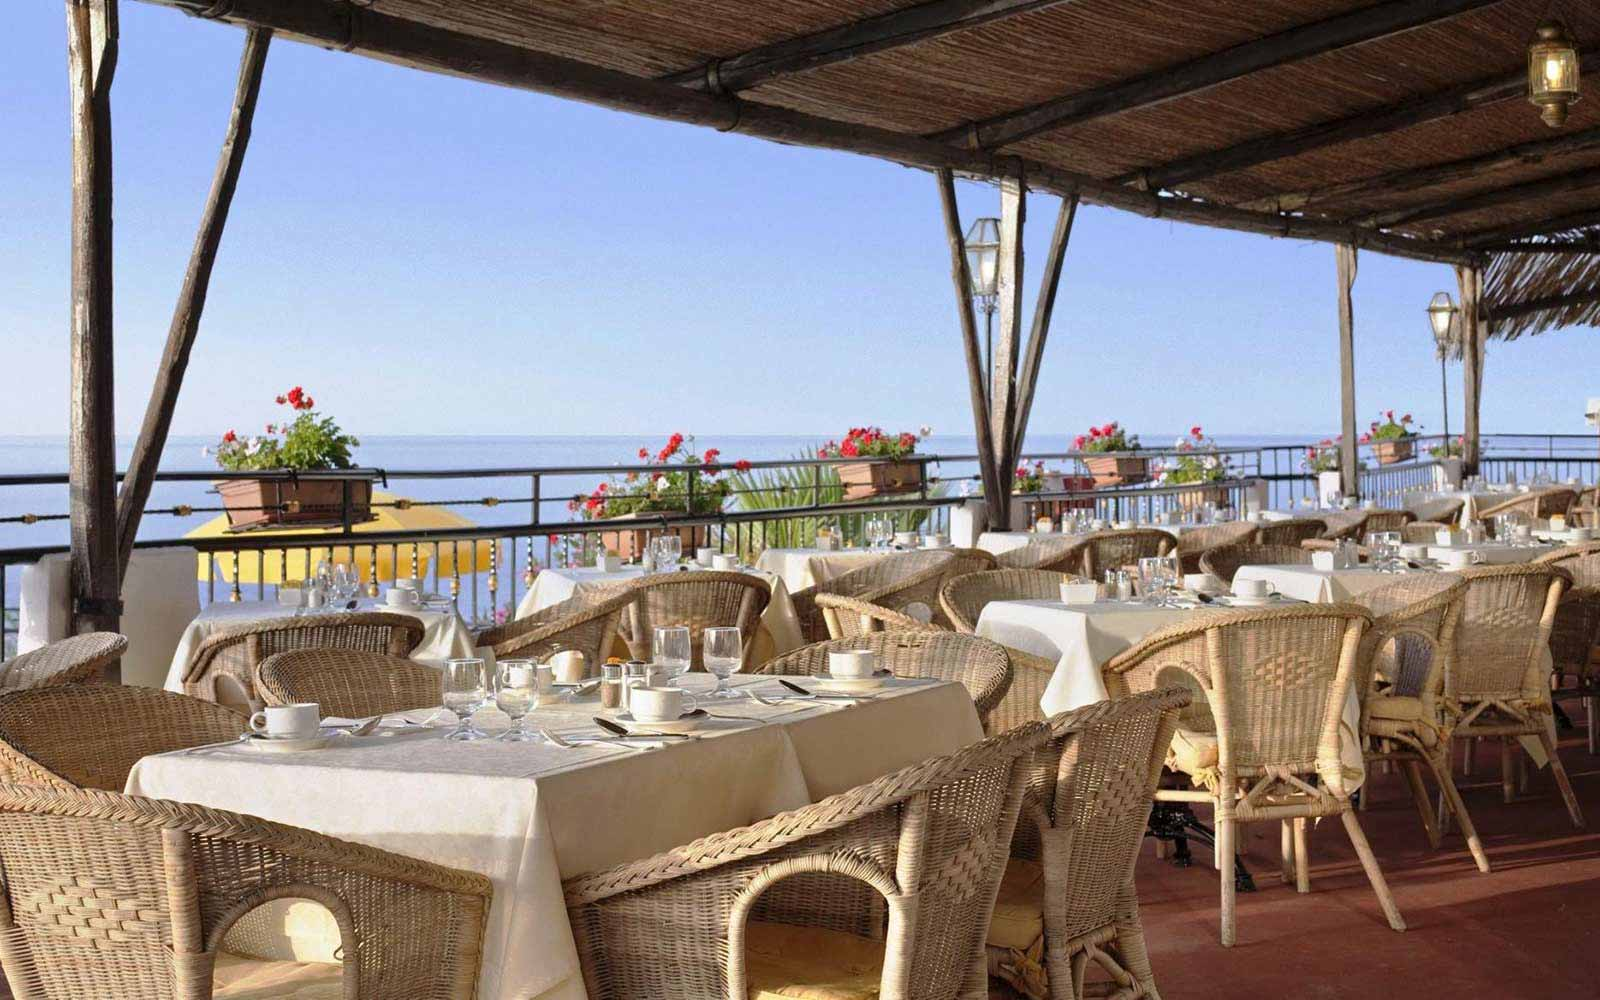 Panarea restaurant at the Hilton Giardini Naxos